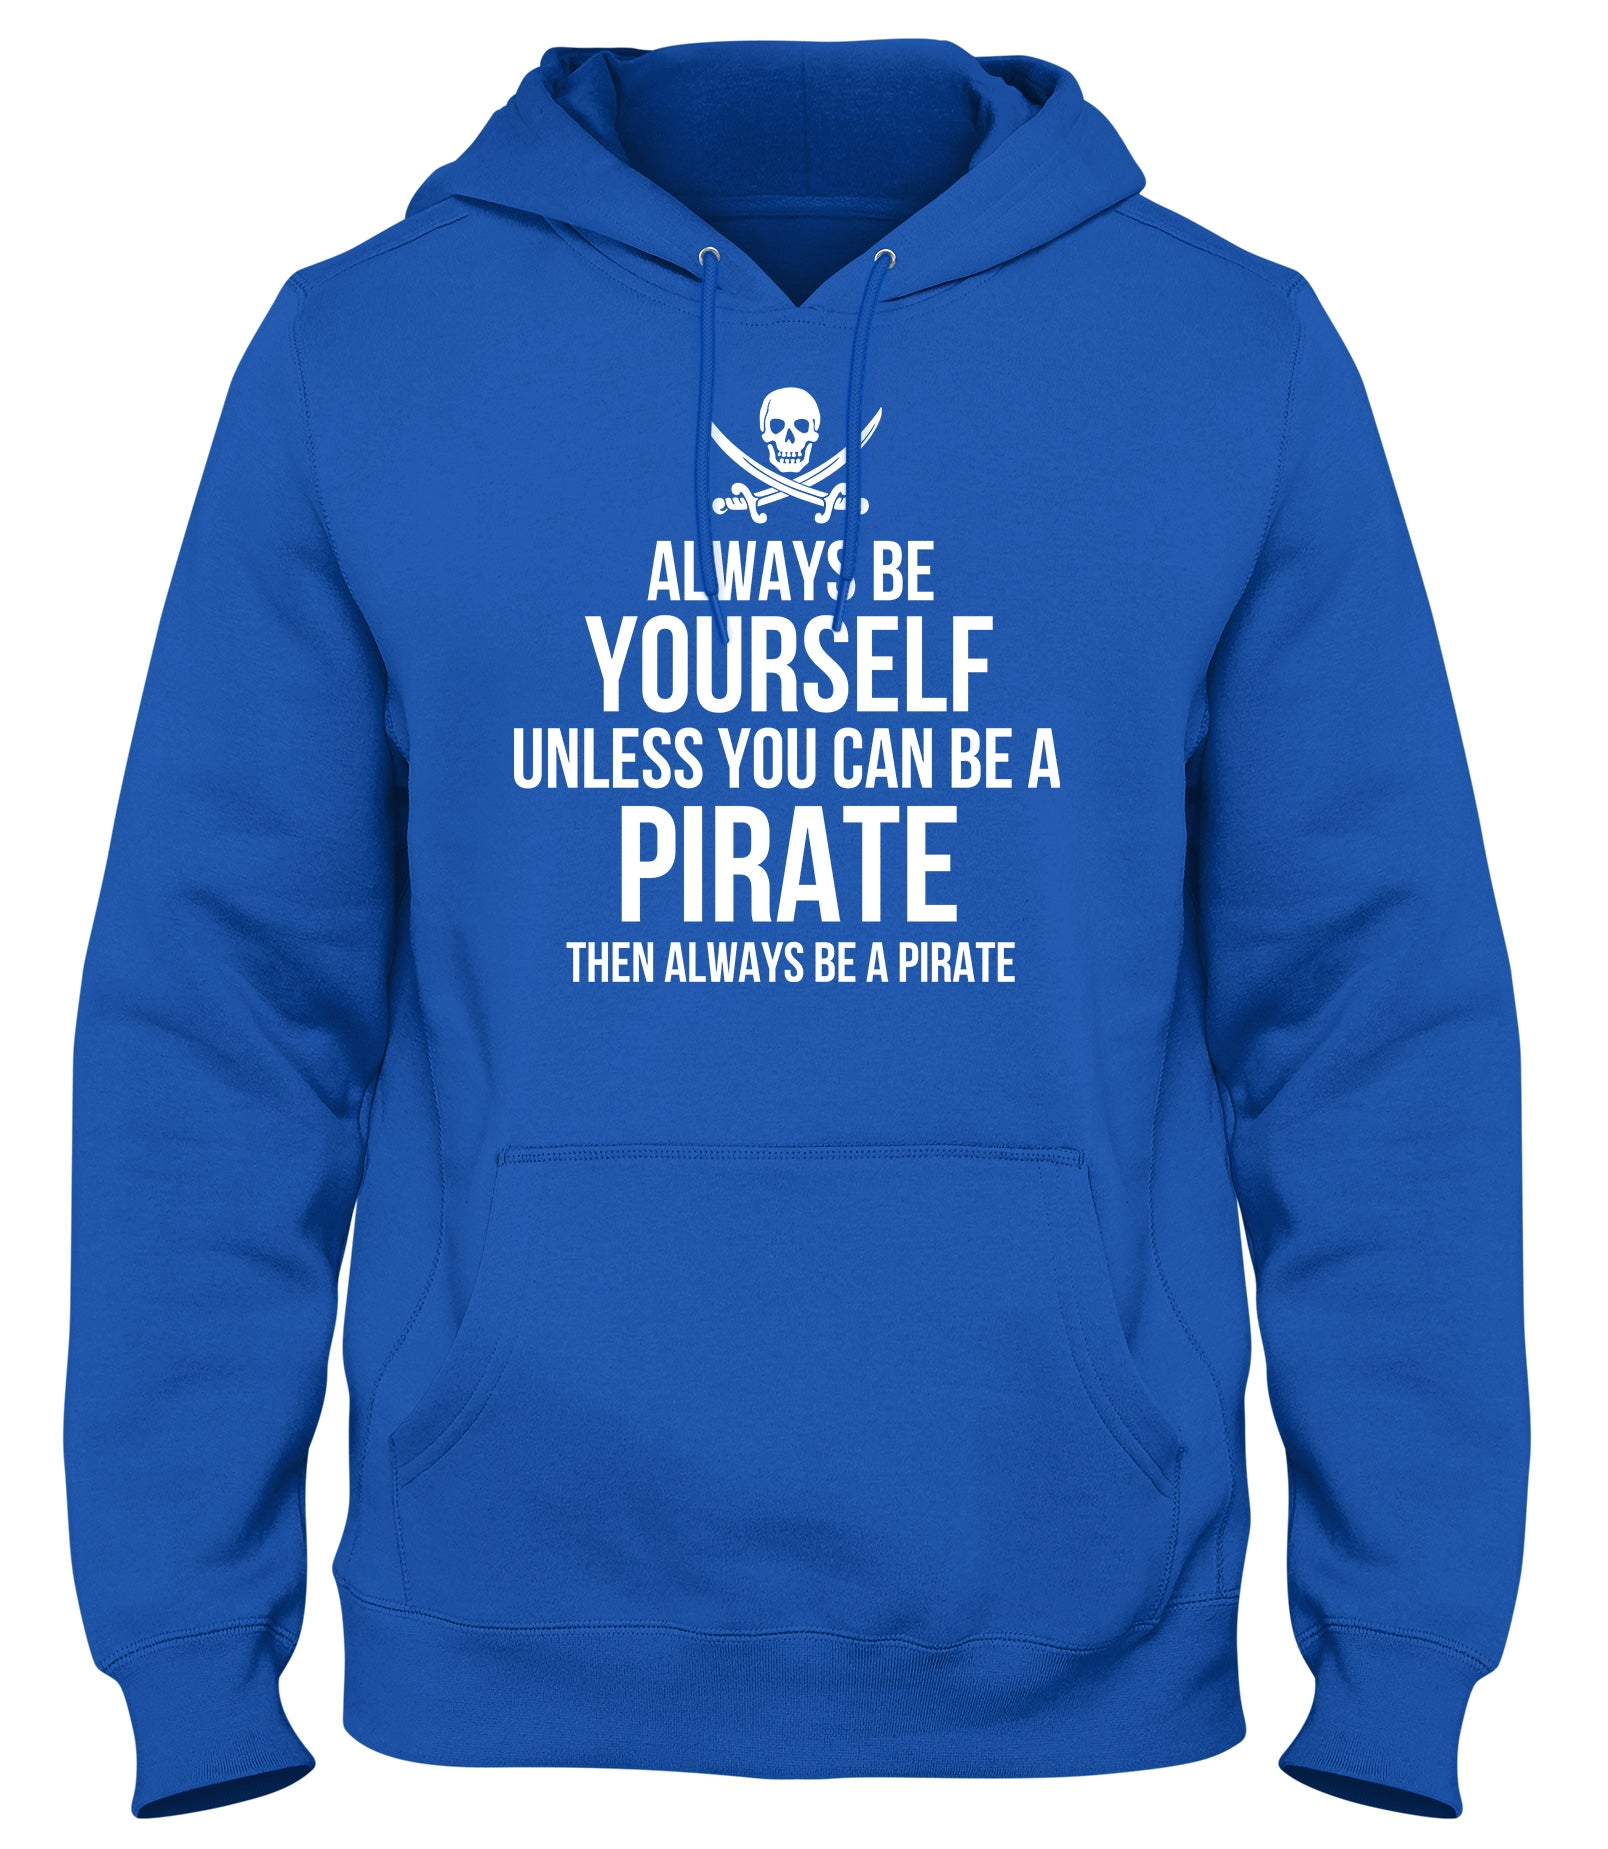 ALWAYS BE YOURSELF UNLESS YOU CAN BE A PIRATE THEN ALWAYS BE A PIRATE MENS WOMENS LADIES UNISEX FUNNY SLOGAN HOODIE